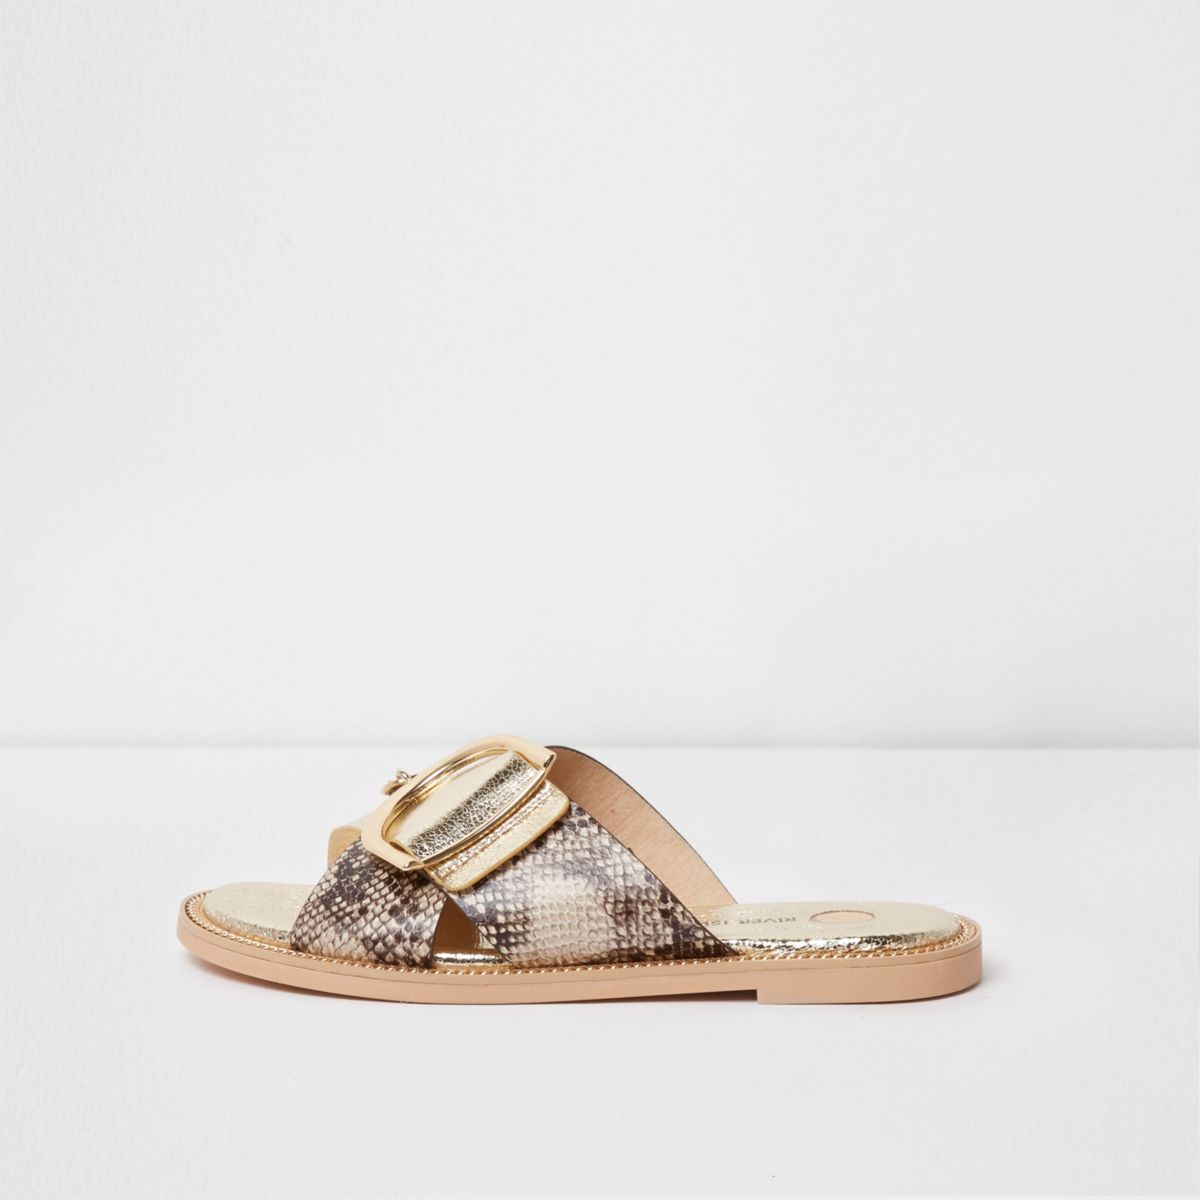 River Island Womens snake cross strap mule sandals